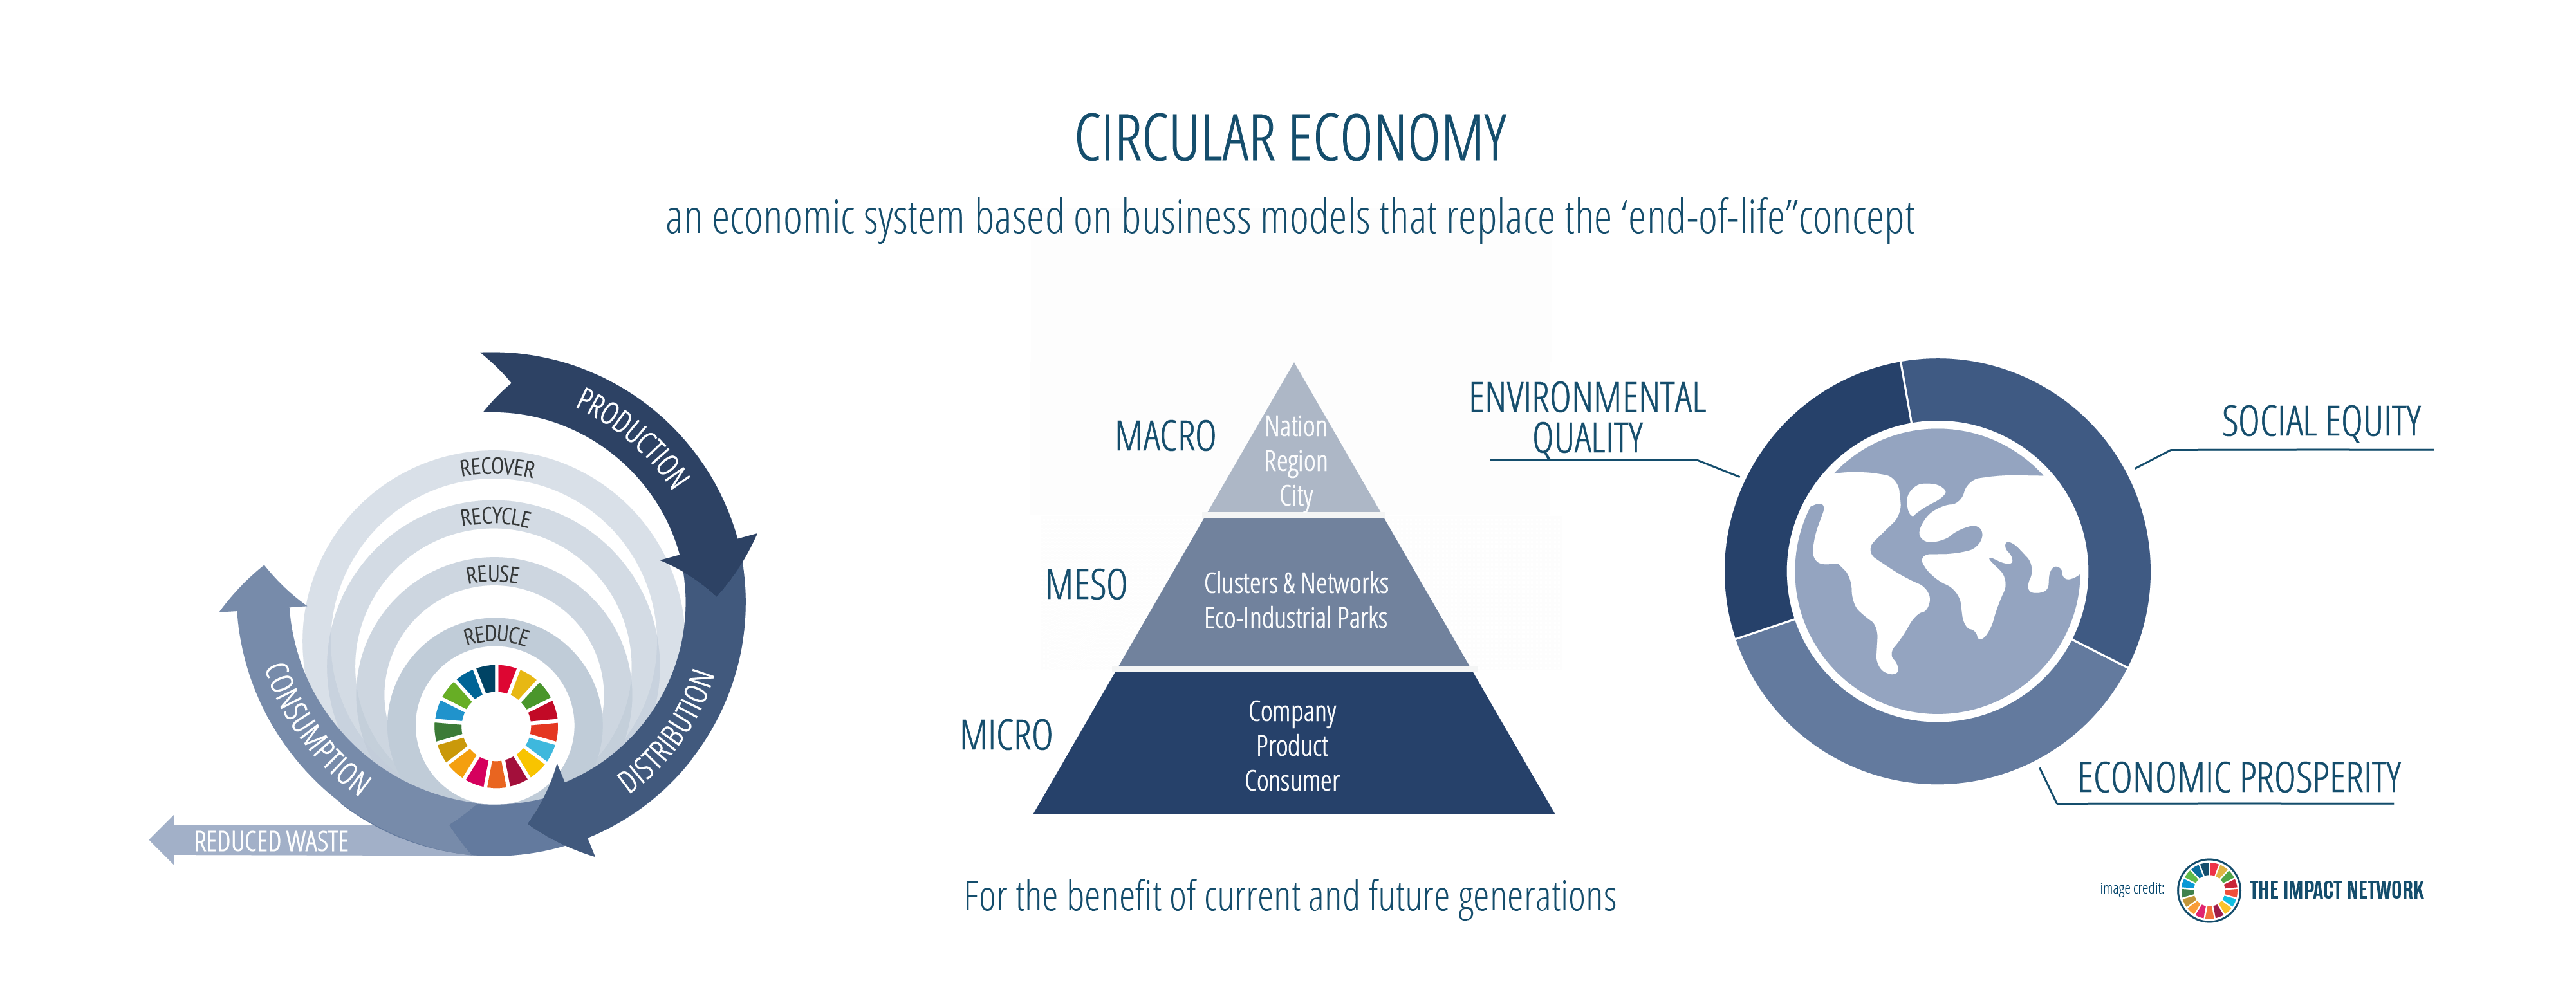 circular economy definitionAsset 4